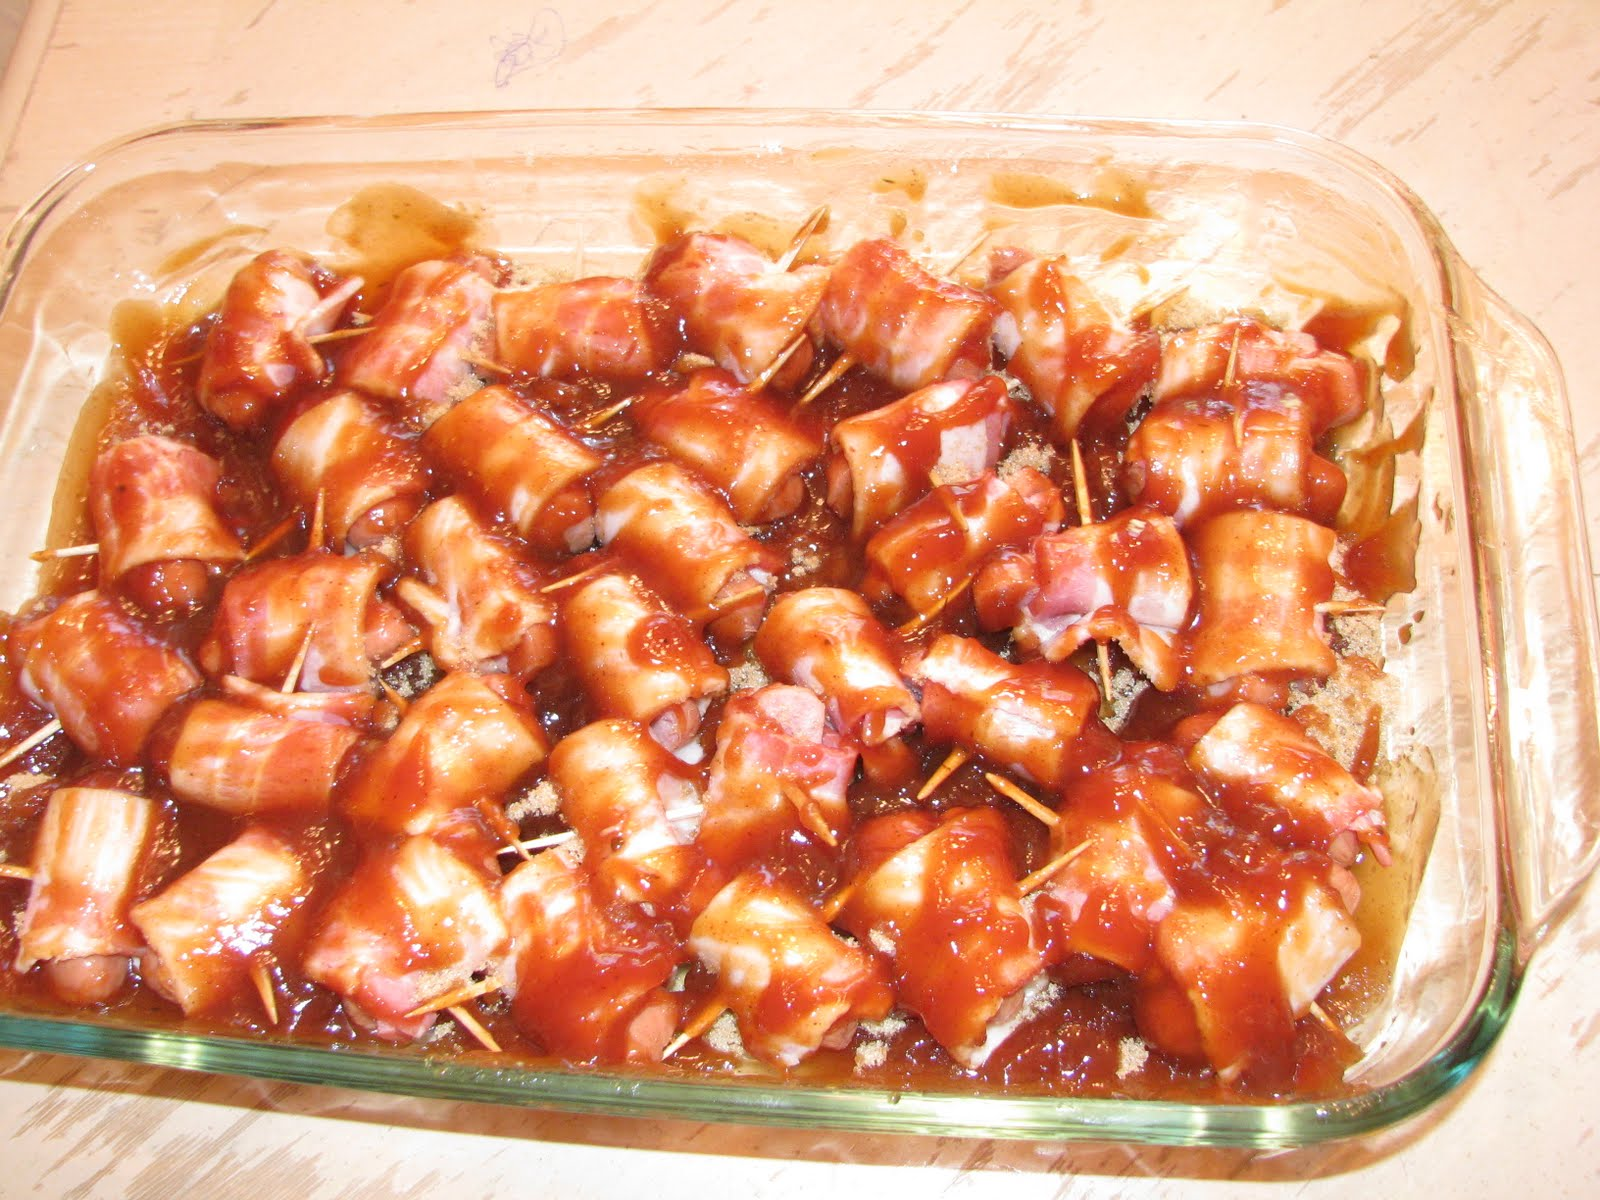 Home Baked Memories: Barbecue Bacon Wrapped Smokies